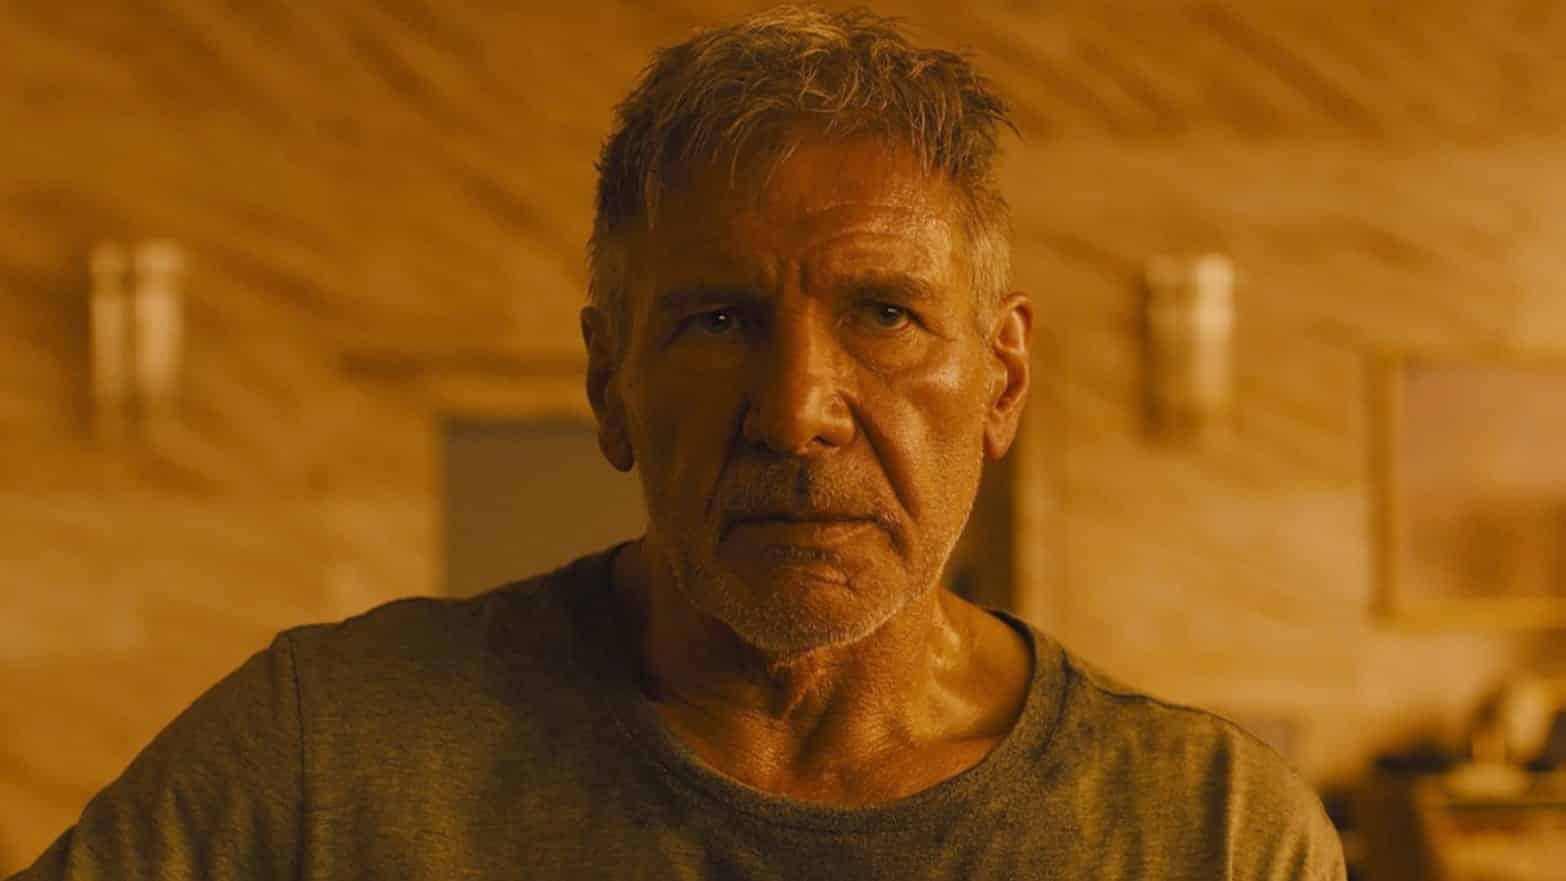 Blade Runner 2049 rejects epic chosen one narrative for an intimate story of K, not the child of Deckard and Rachael